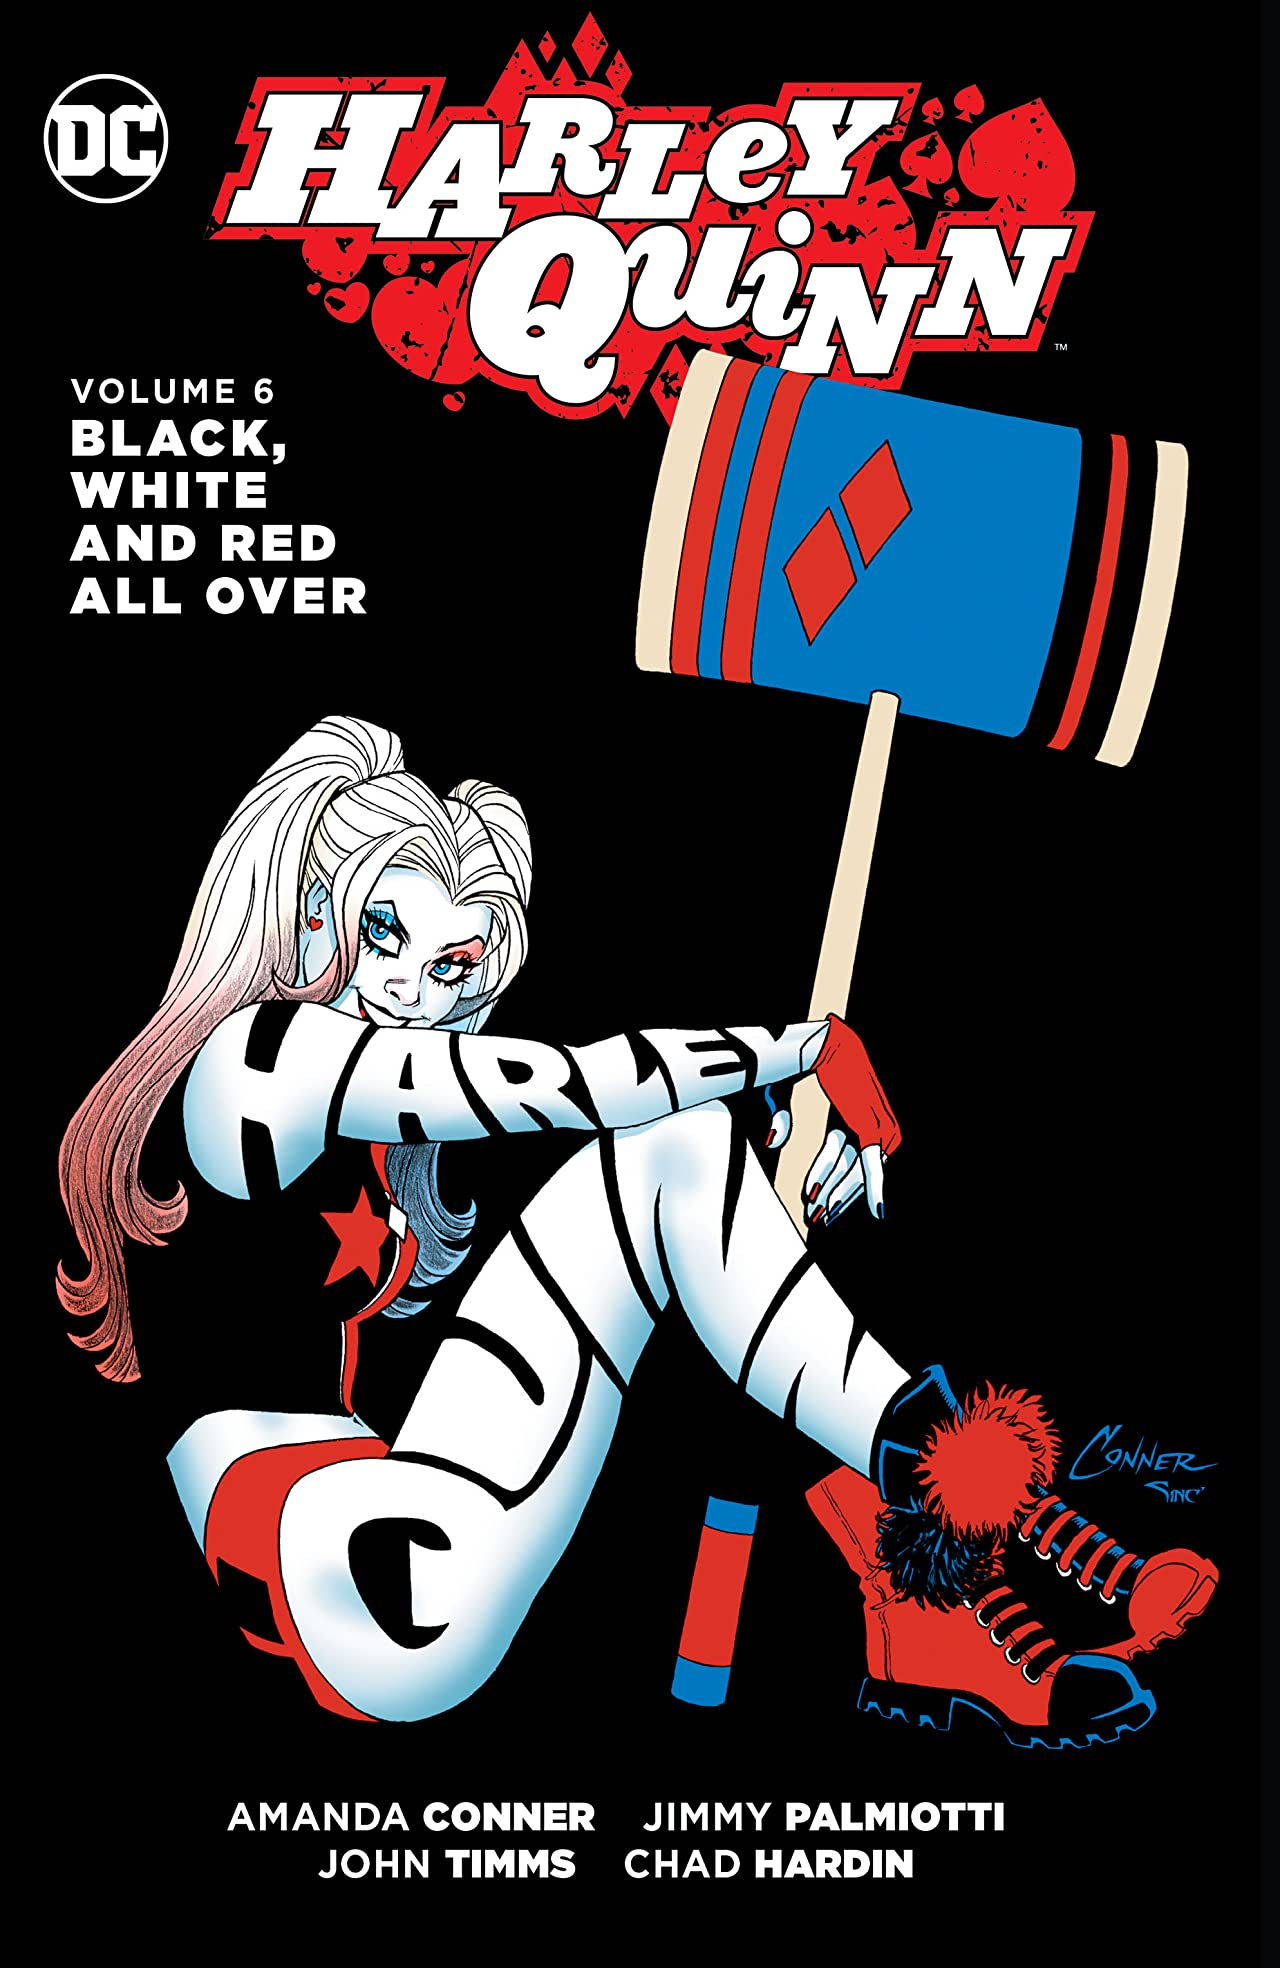 Harley Quinn (2013-2016) Vol. 6: Black, White and Red All Over